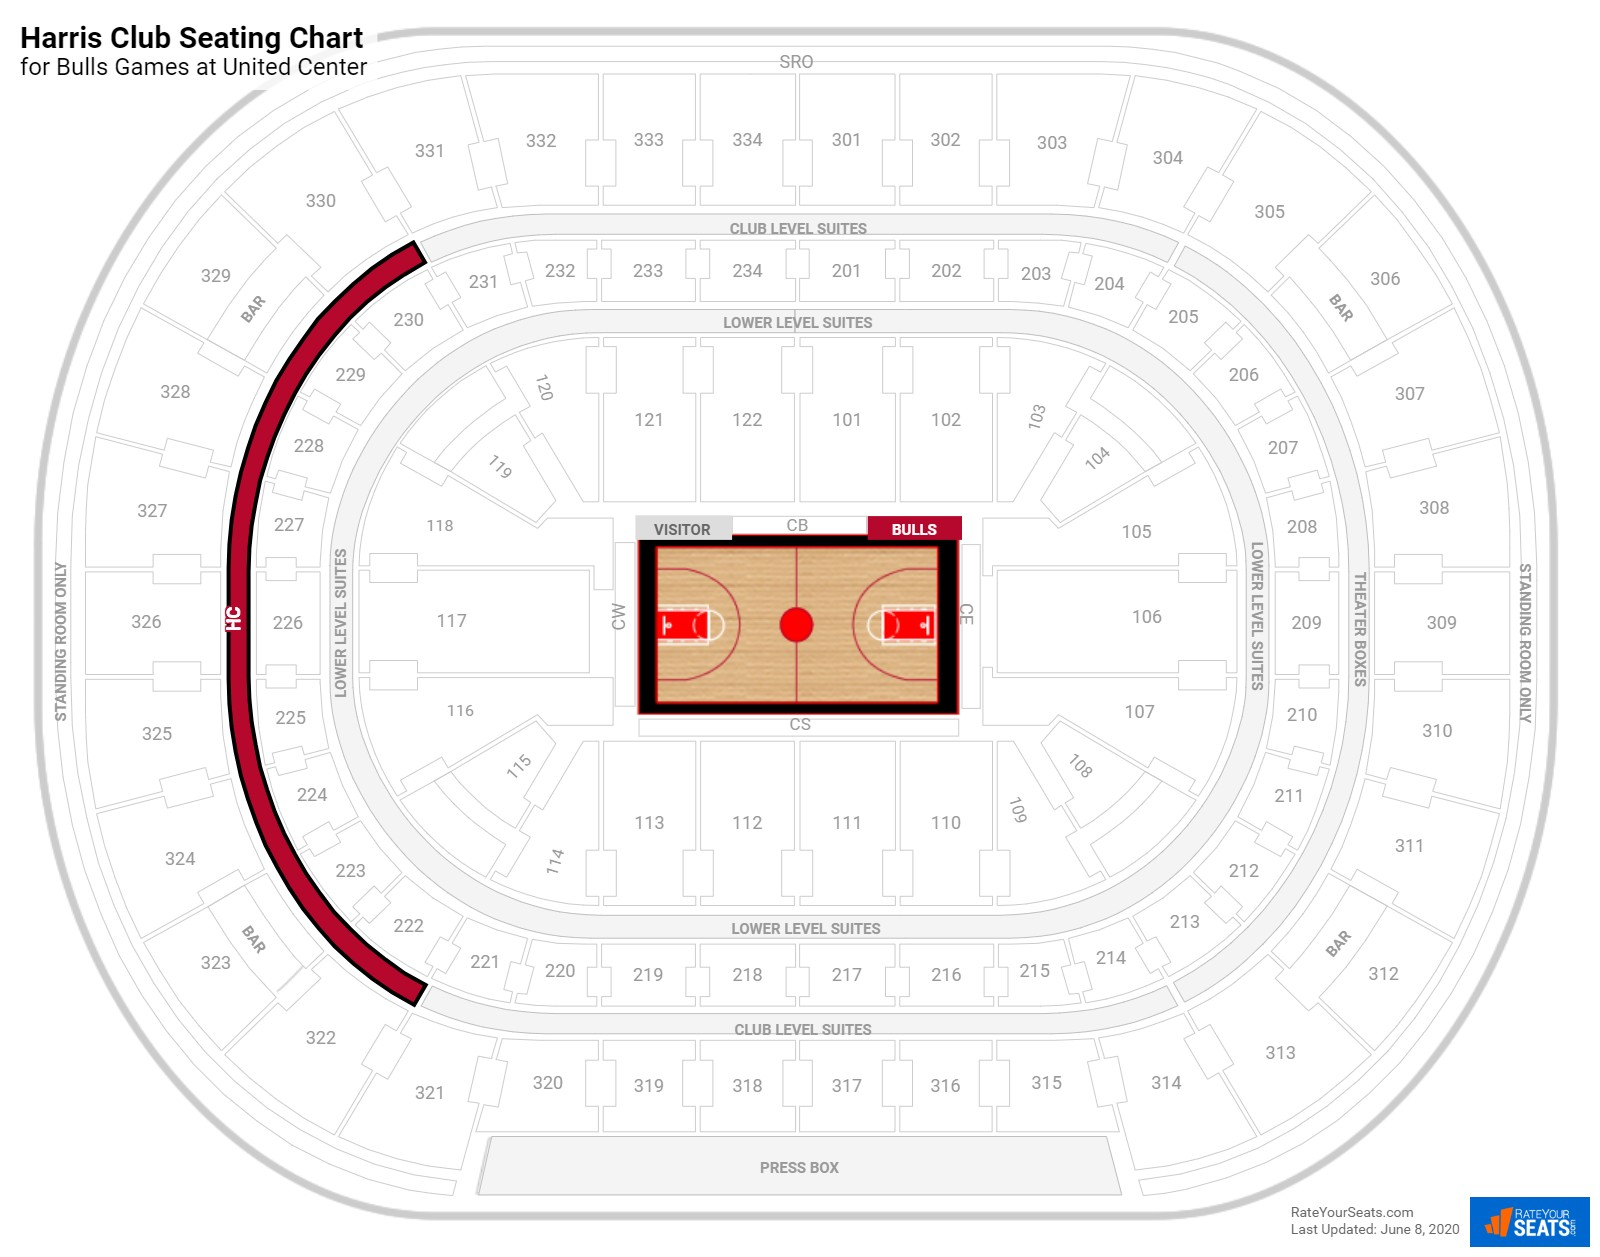 United Center Harris Club seating chart